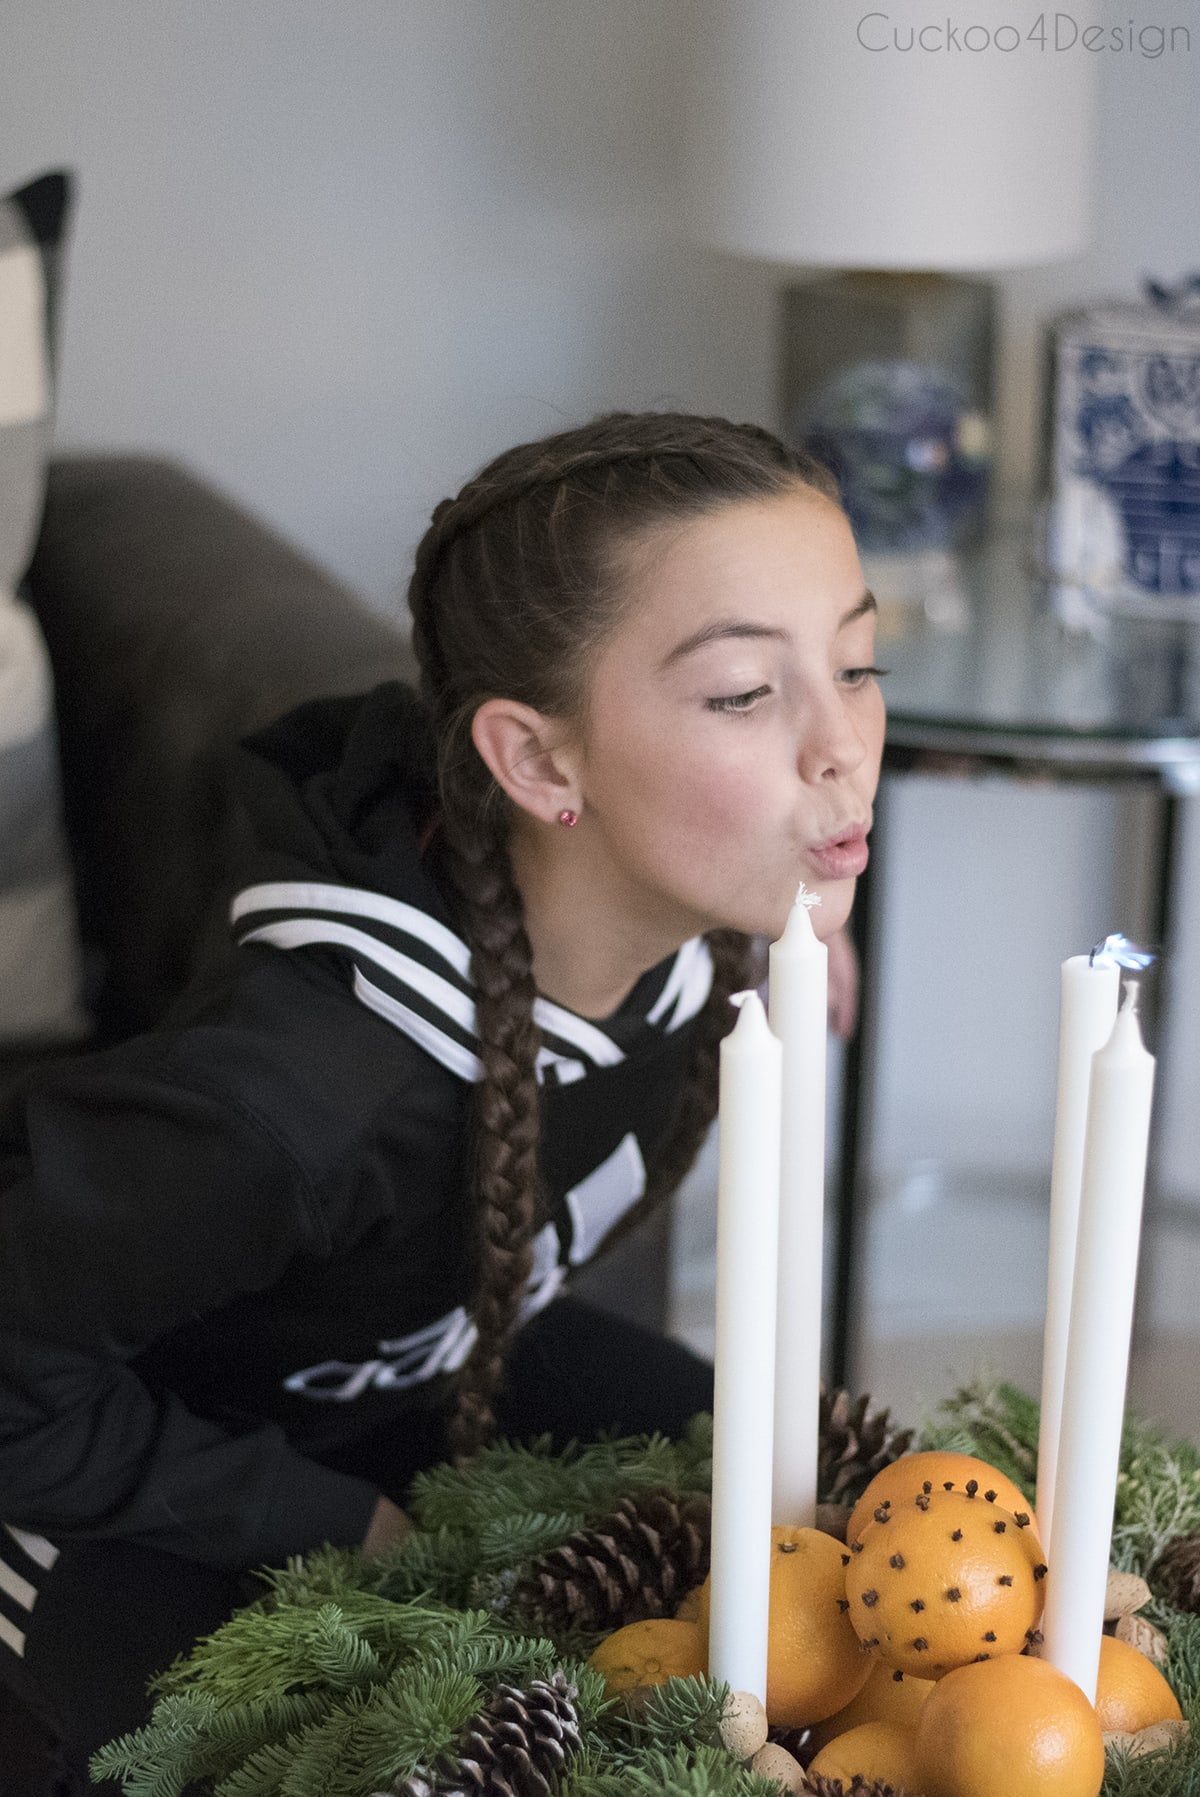 our daughter blowing out candles